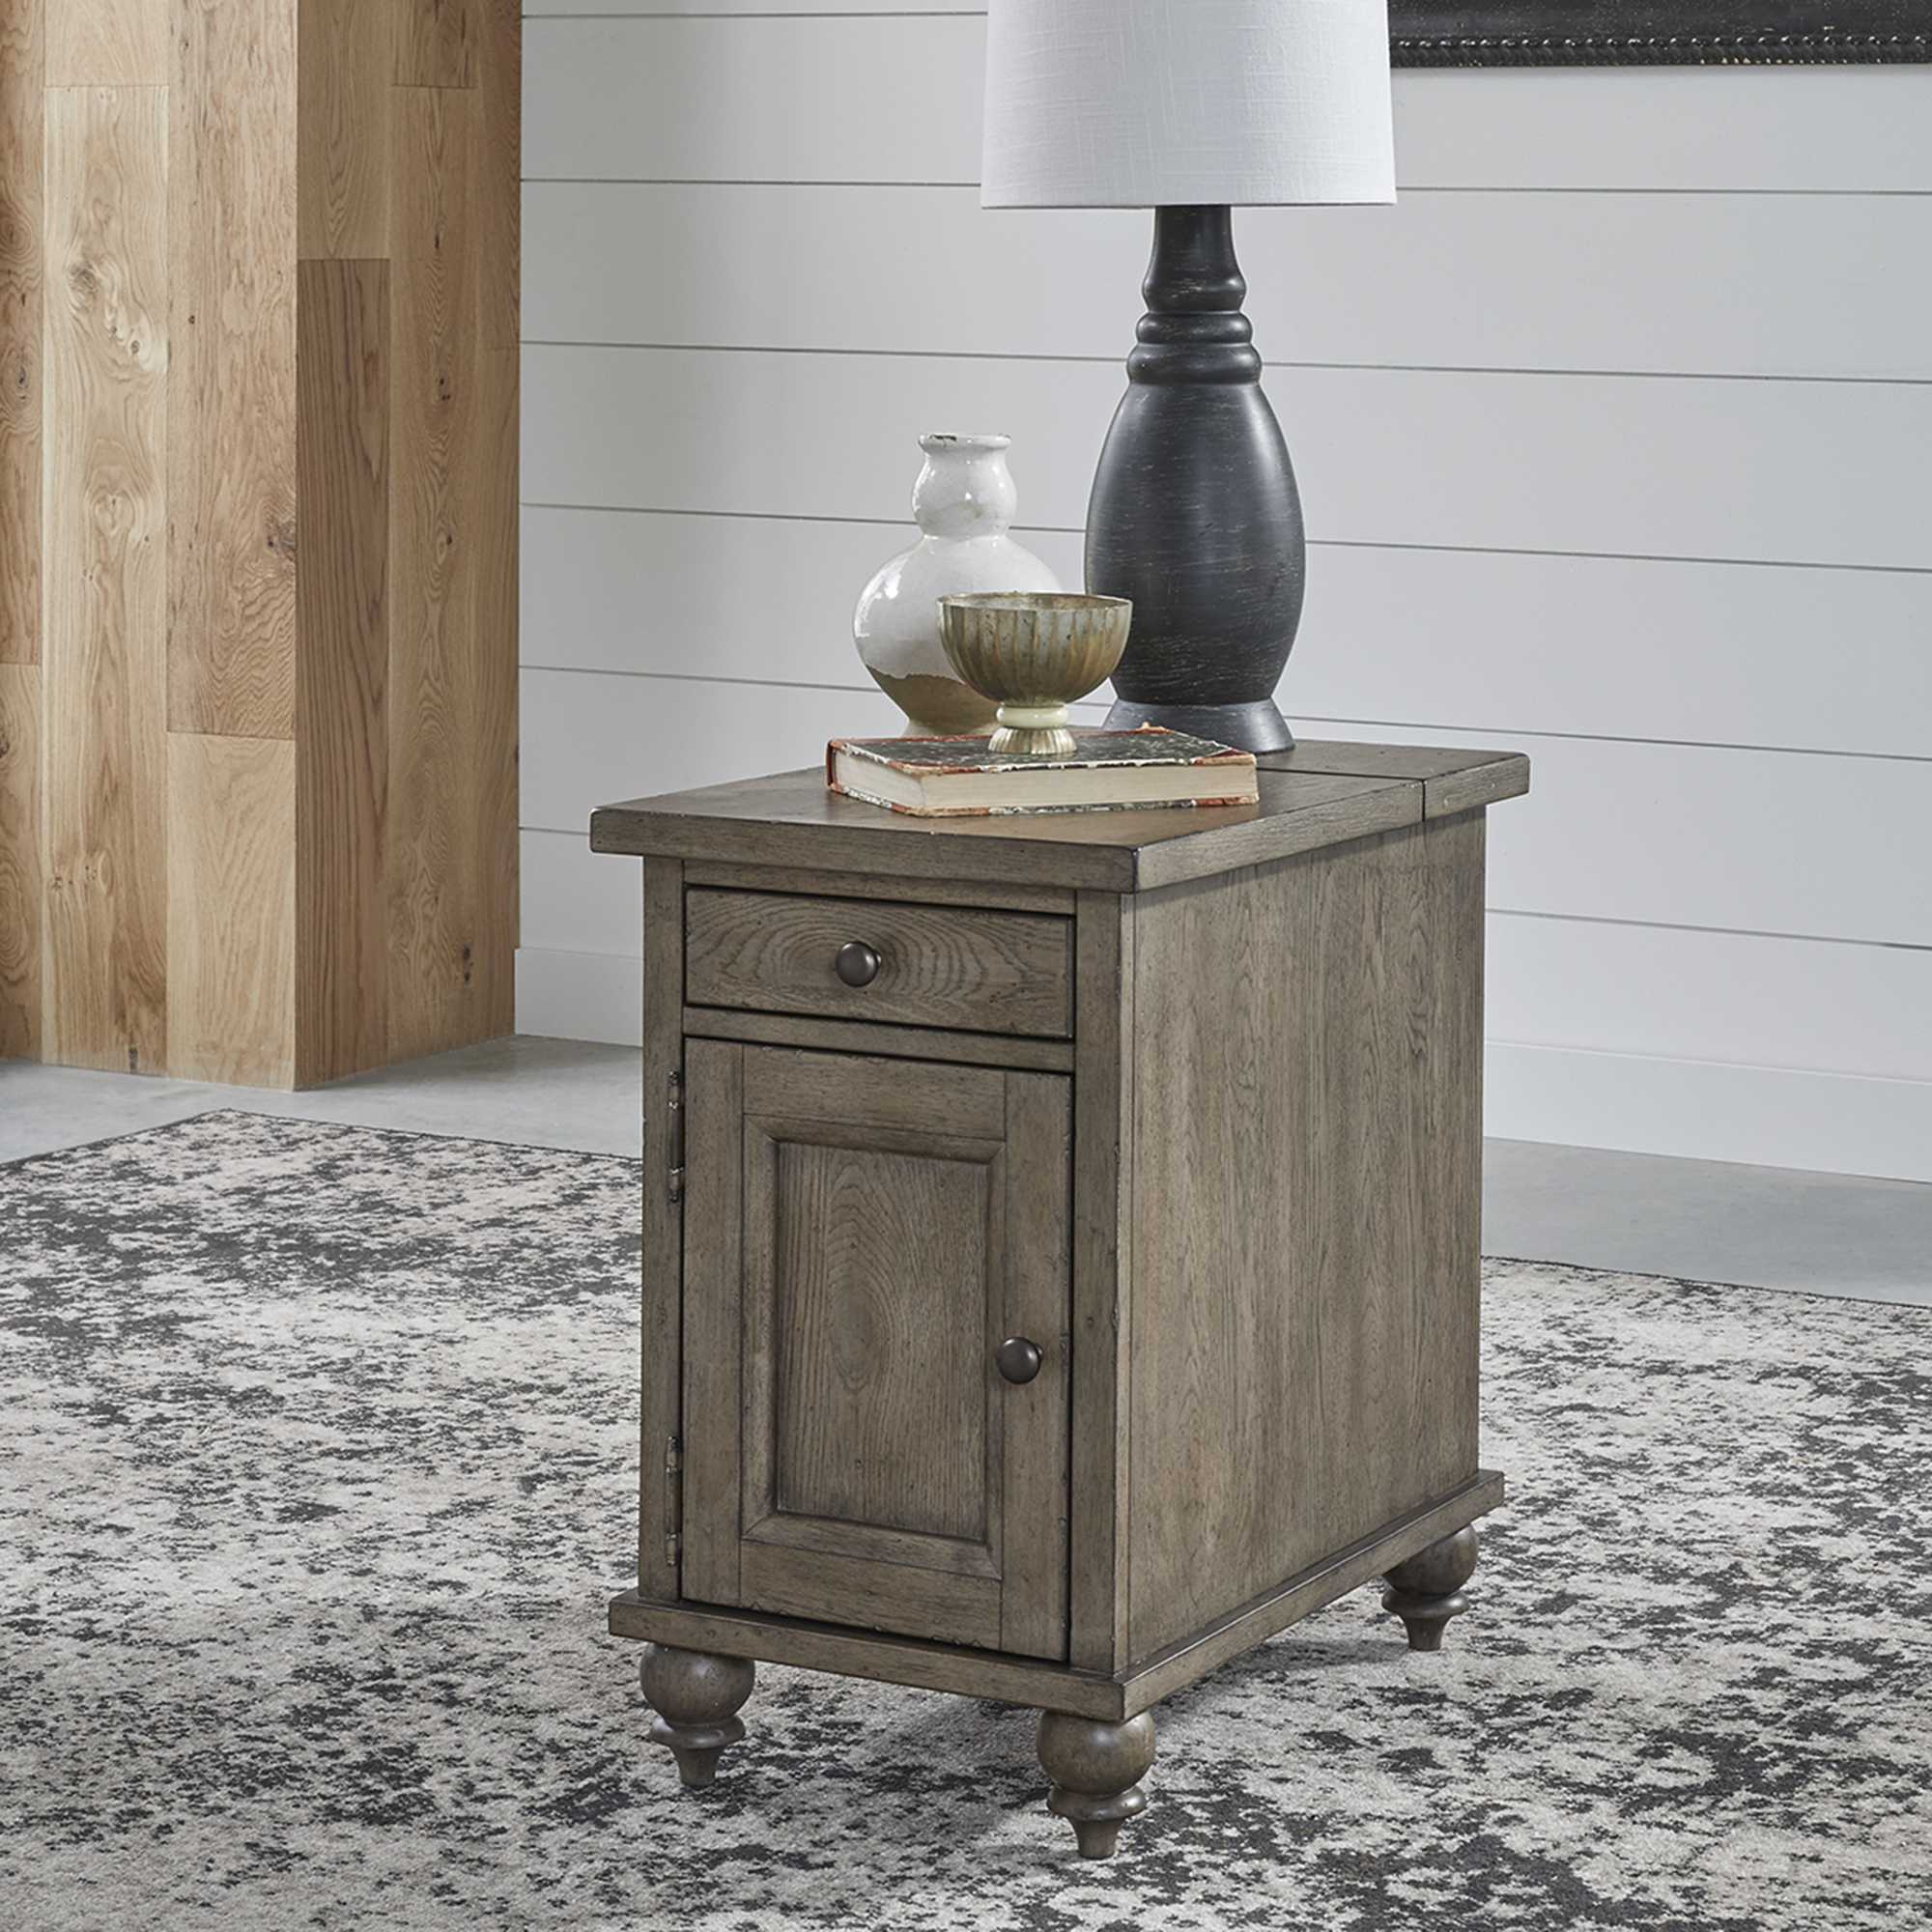 Americana Farmhouse Chairside Table by Liberty Furniture at Home Collections Furniture